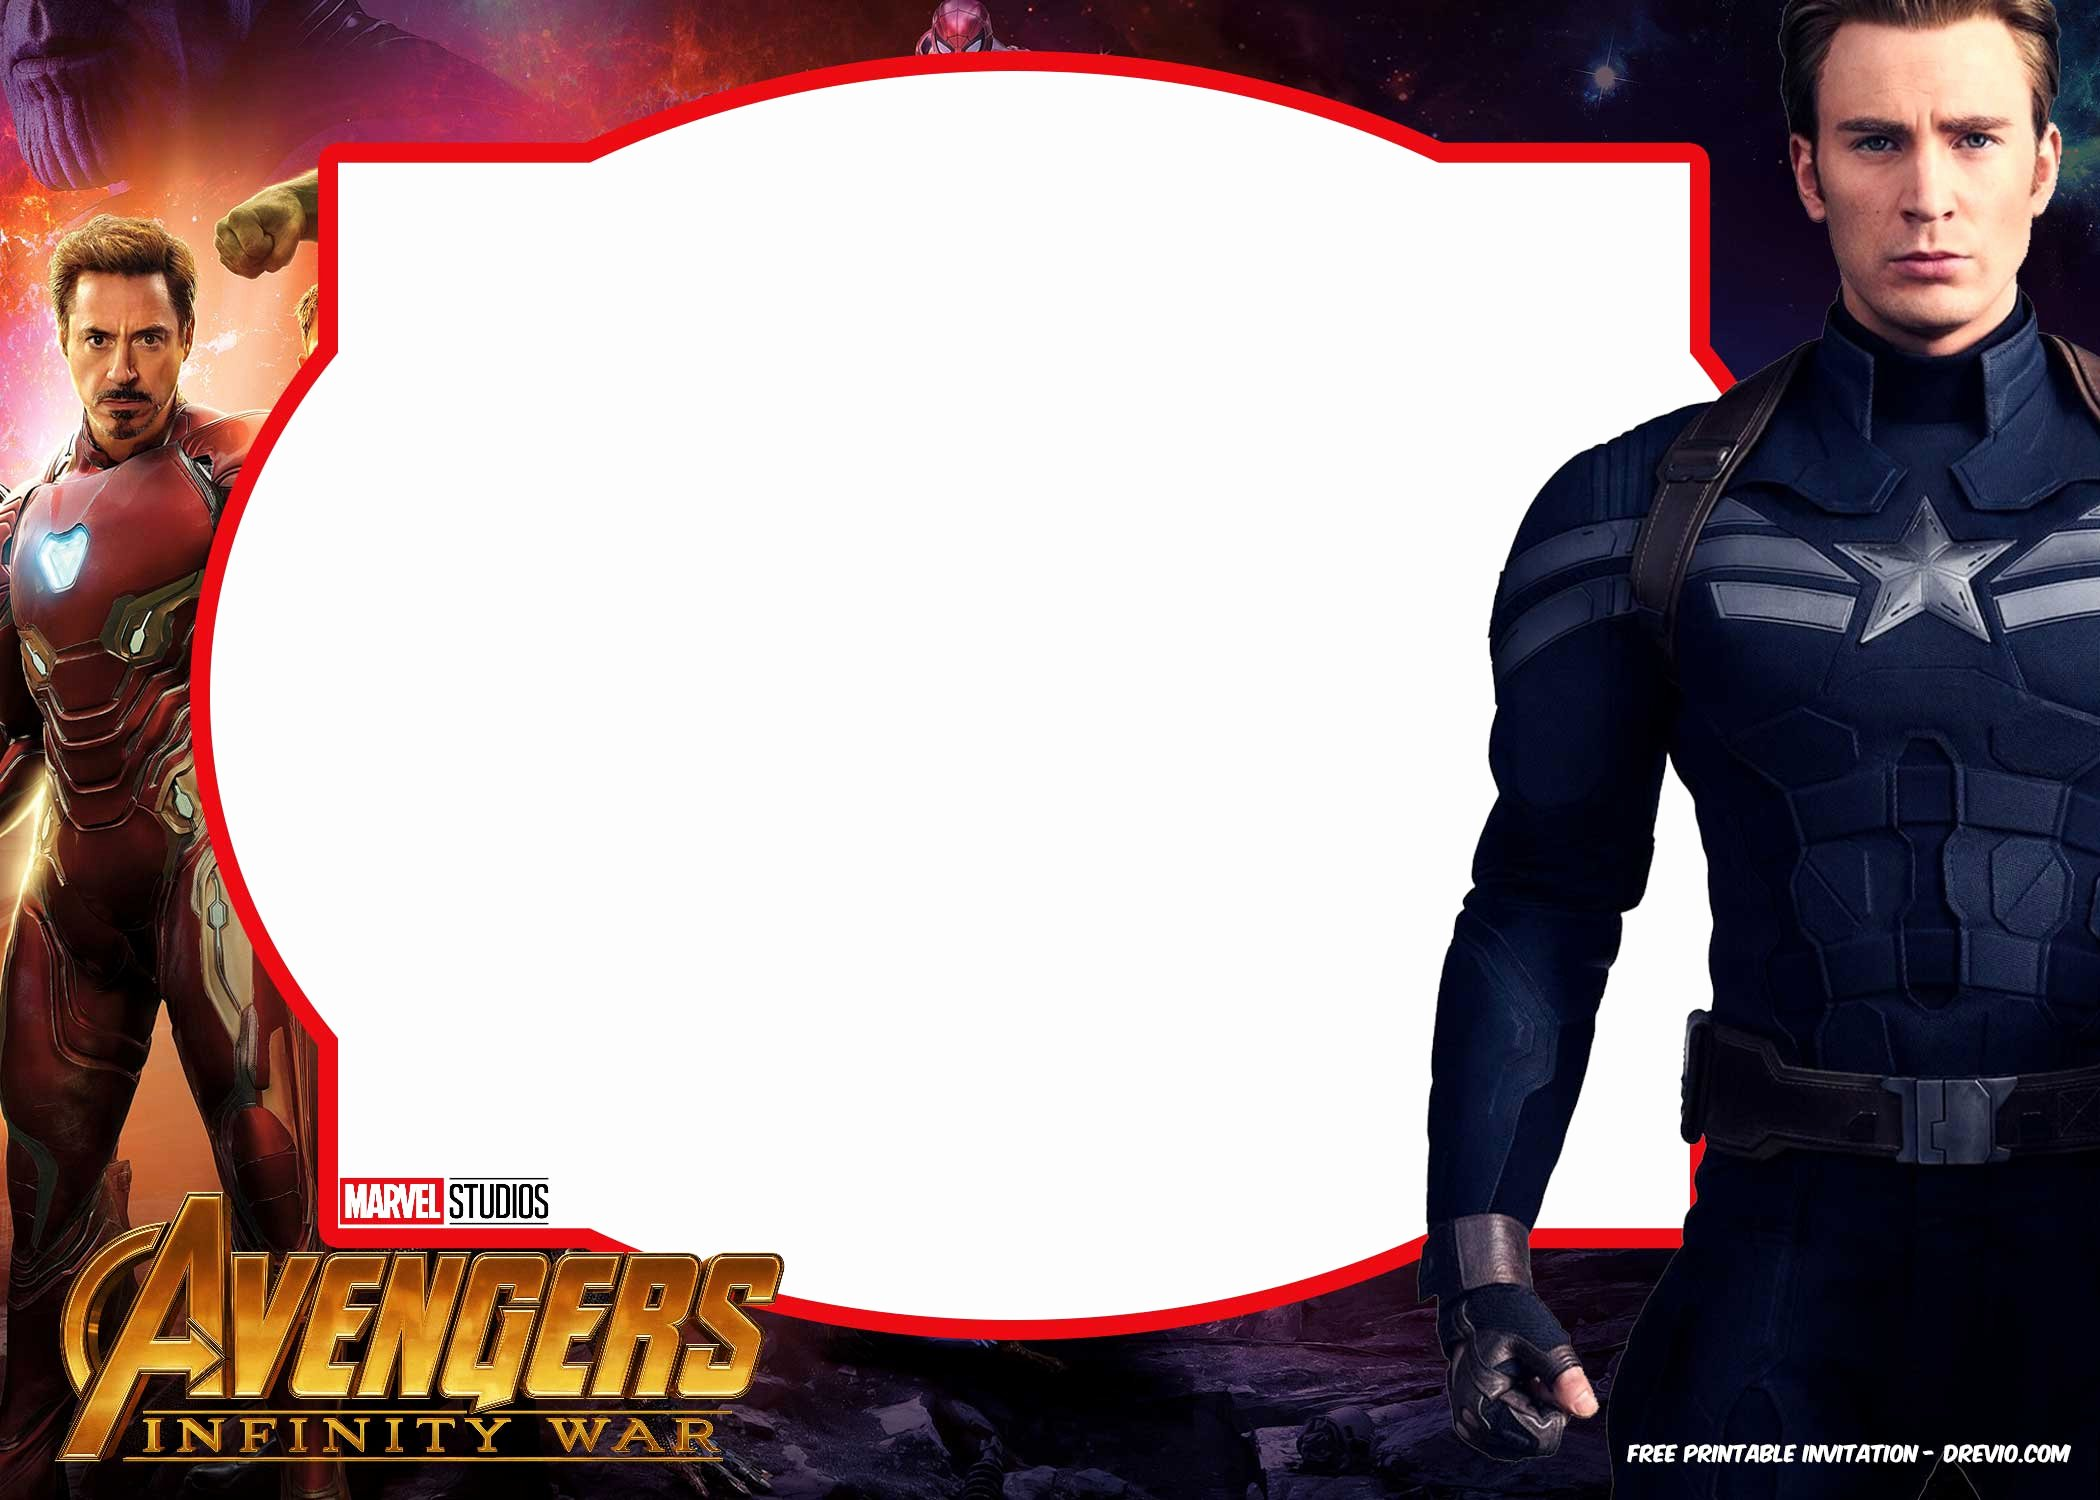 Avengers Invitations Template Free New Free Avengers Infinity Wars Invitations Template – Free